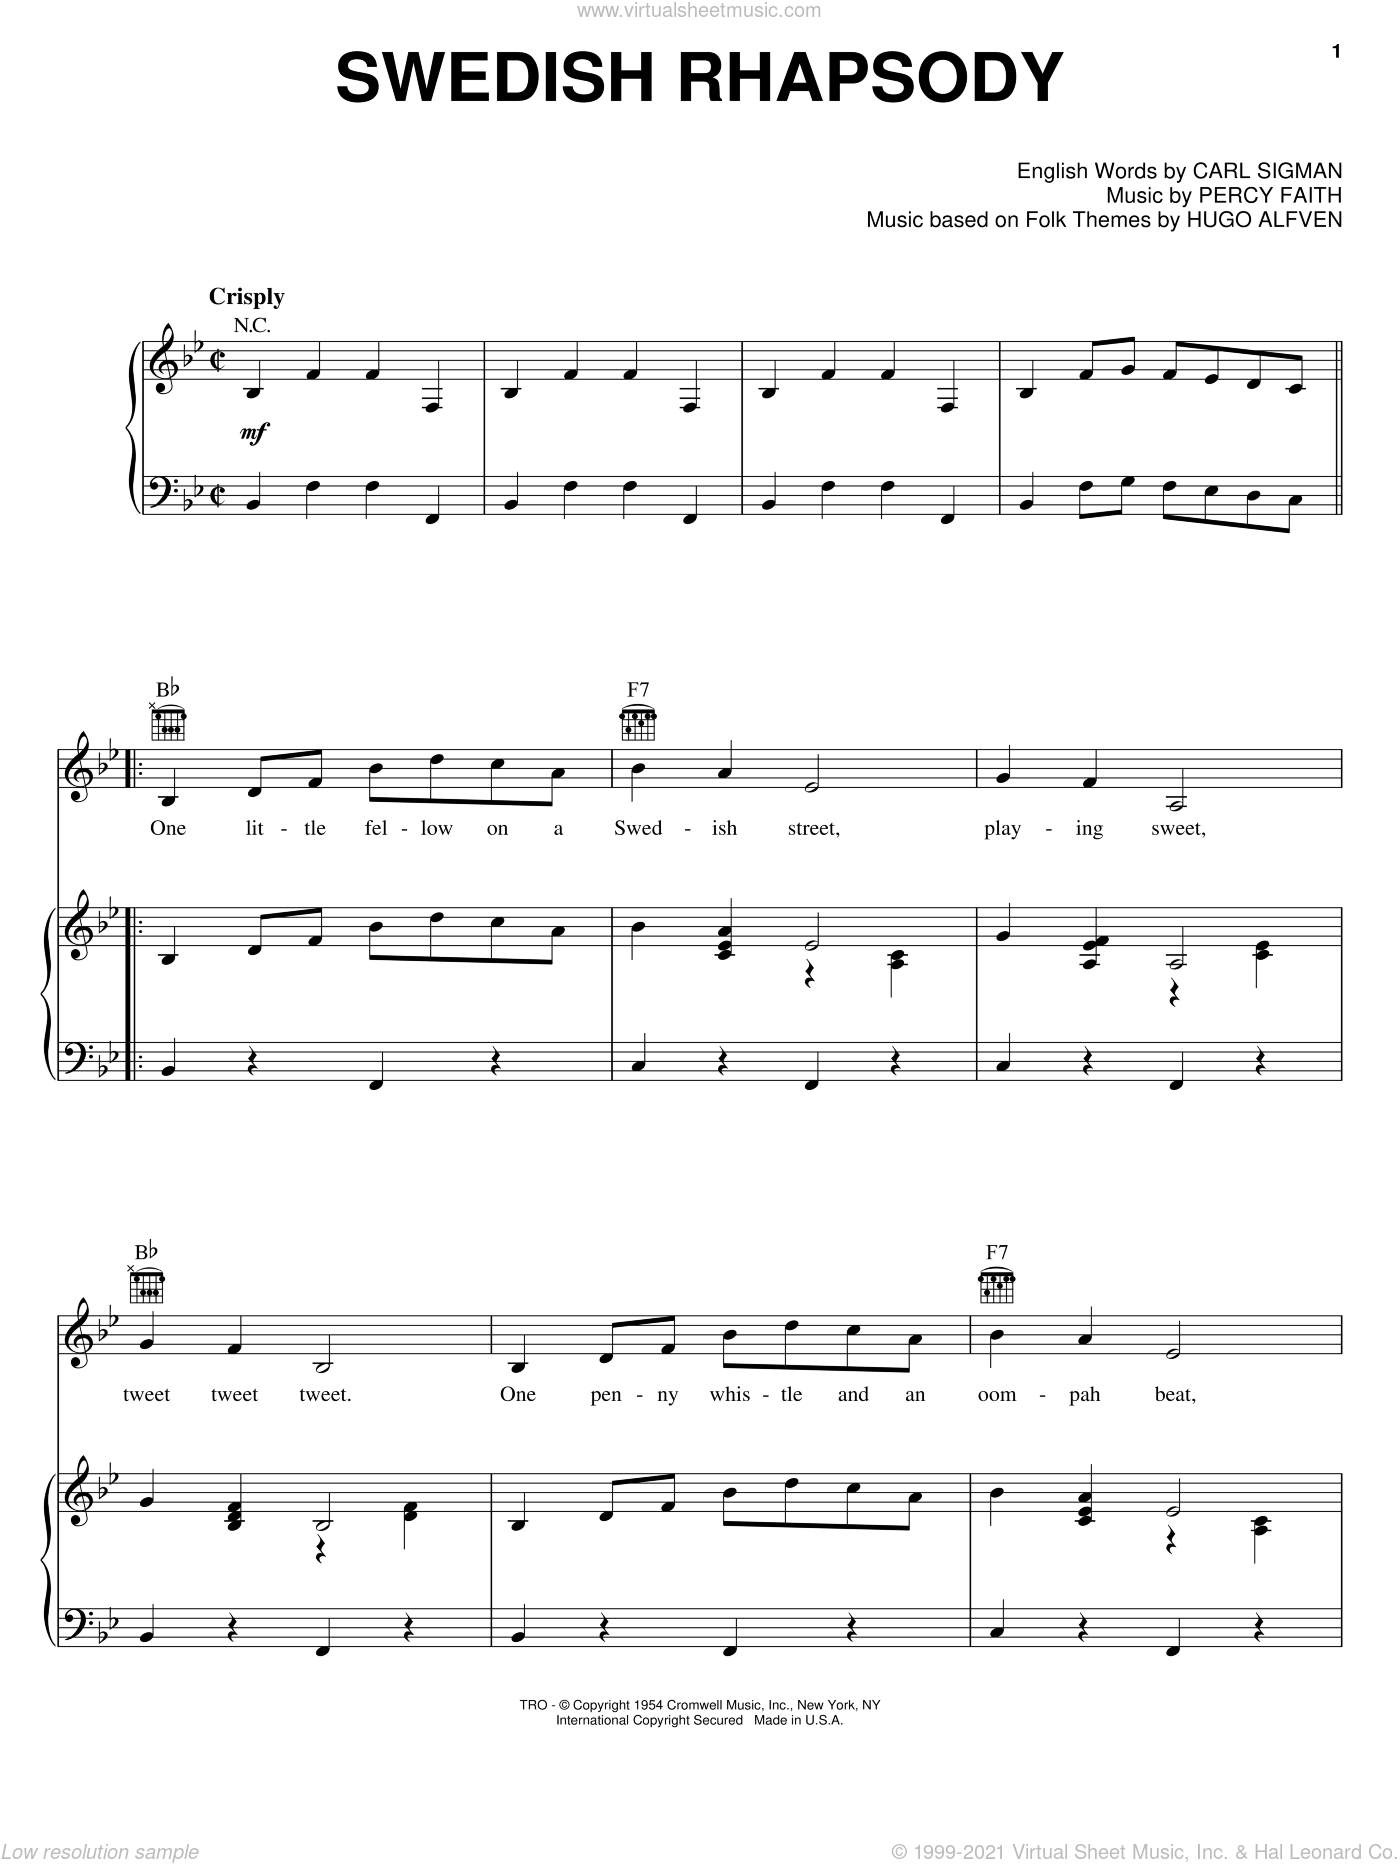 Swedish Rhapsody sheet music for voice, piano or guitar by Carl Sigman